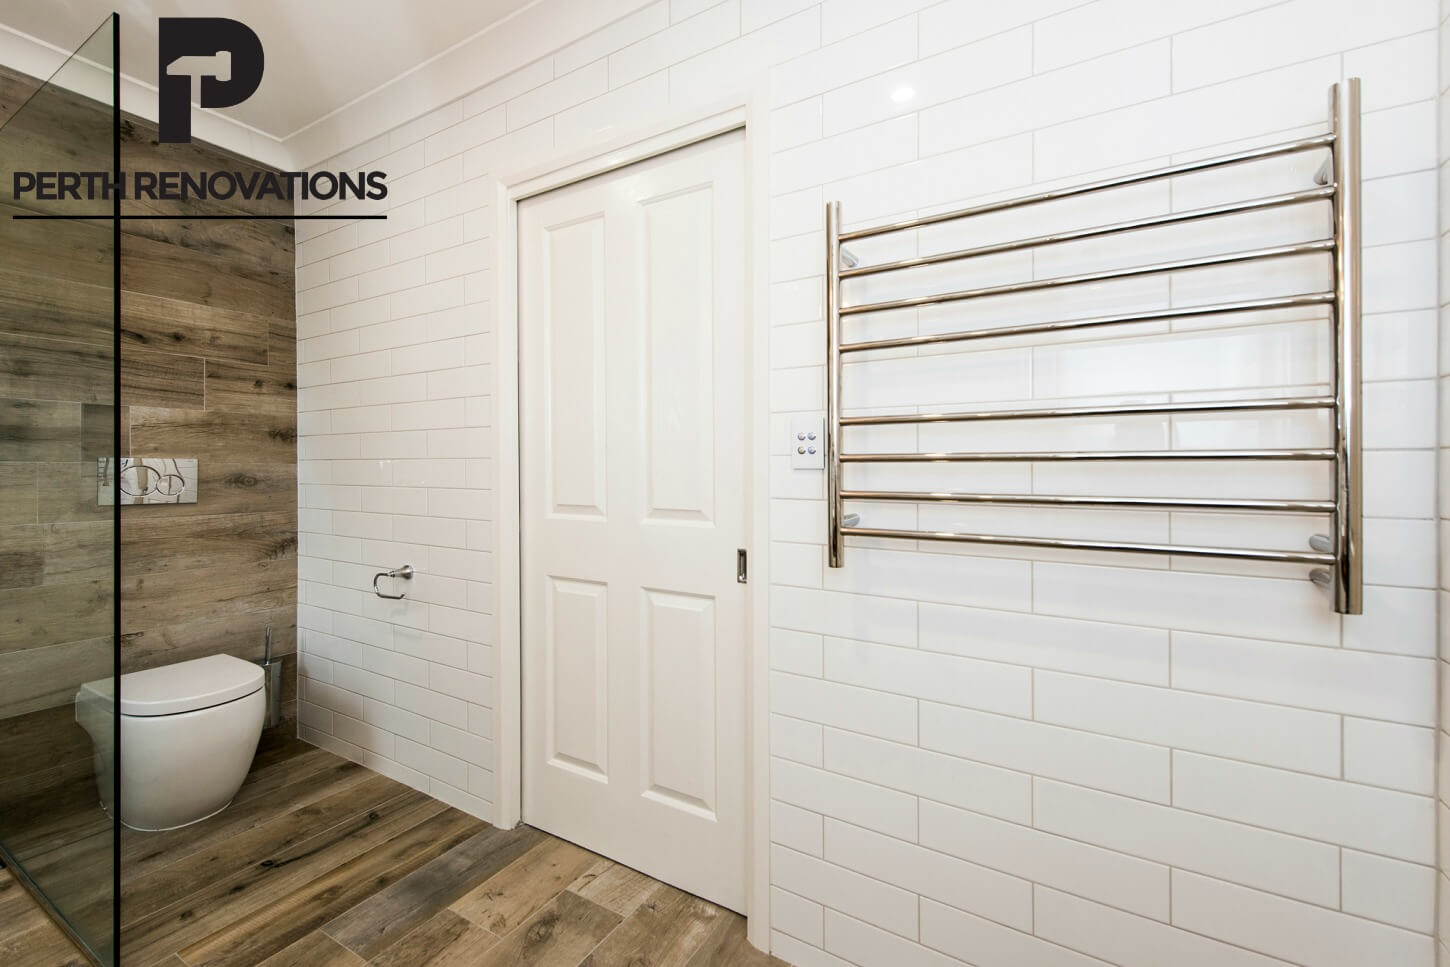 Perth Renovations Co The Easy Effective Way To Paint Ceilings And Doors Like A Pro